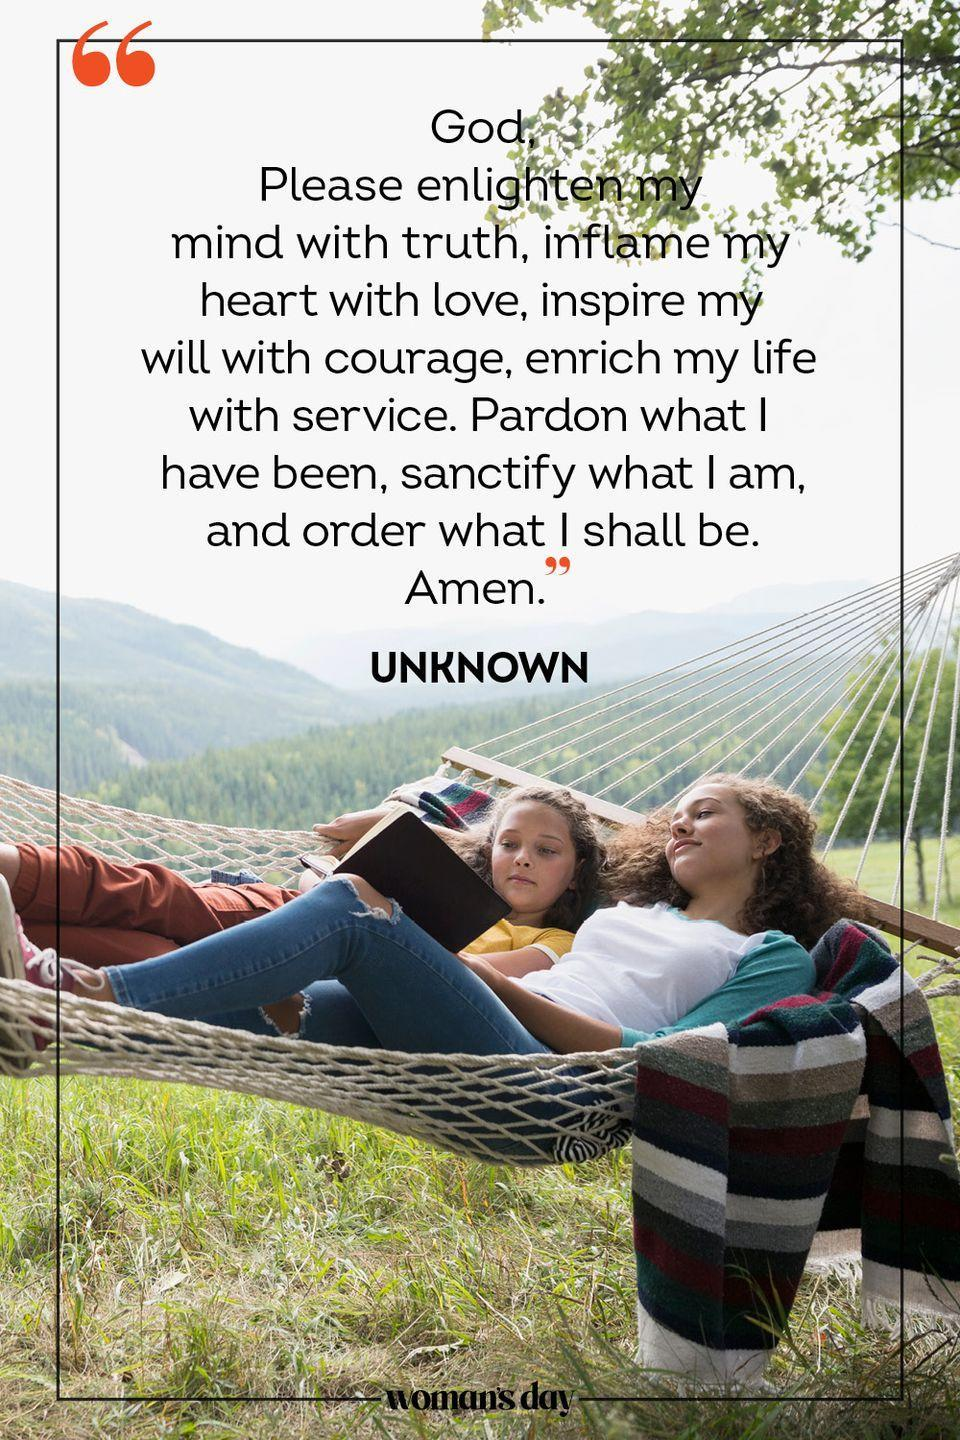 """<p>God, </p><p>Please enlighten my mind with truth, inflame my heart with love, inspire my will with courage, enrich my life with service. Pardon what I have been, sanctify what I am, and order what I shall be. </p><p>Amen. </p><p>— <a href=""""https://www.crosswalk.com/faith/prayer/10-morning-prayers-to-use-daily.html"""" rel=""""nofollow noopener"""" target=""""_blank"""" data-ylk=""""slk:Unknown"""" class=""""link rapid-noclick-resp"""">Unknown</a></p>"""